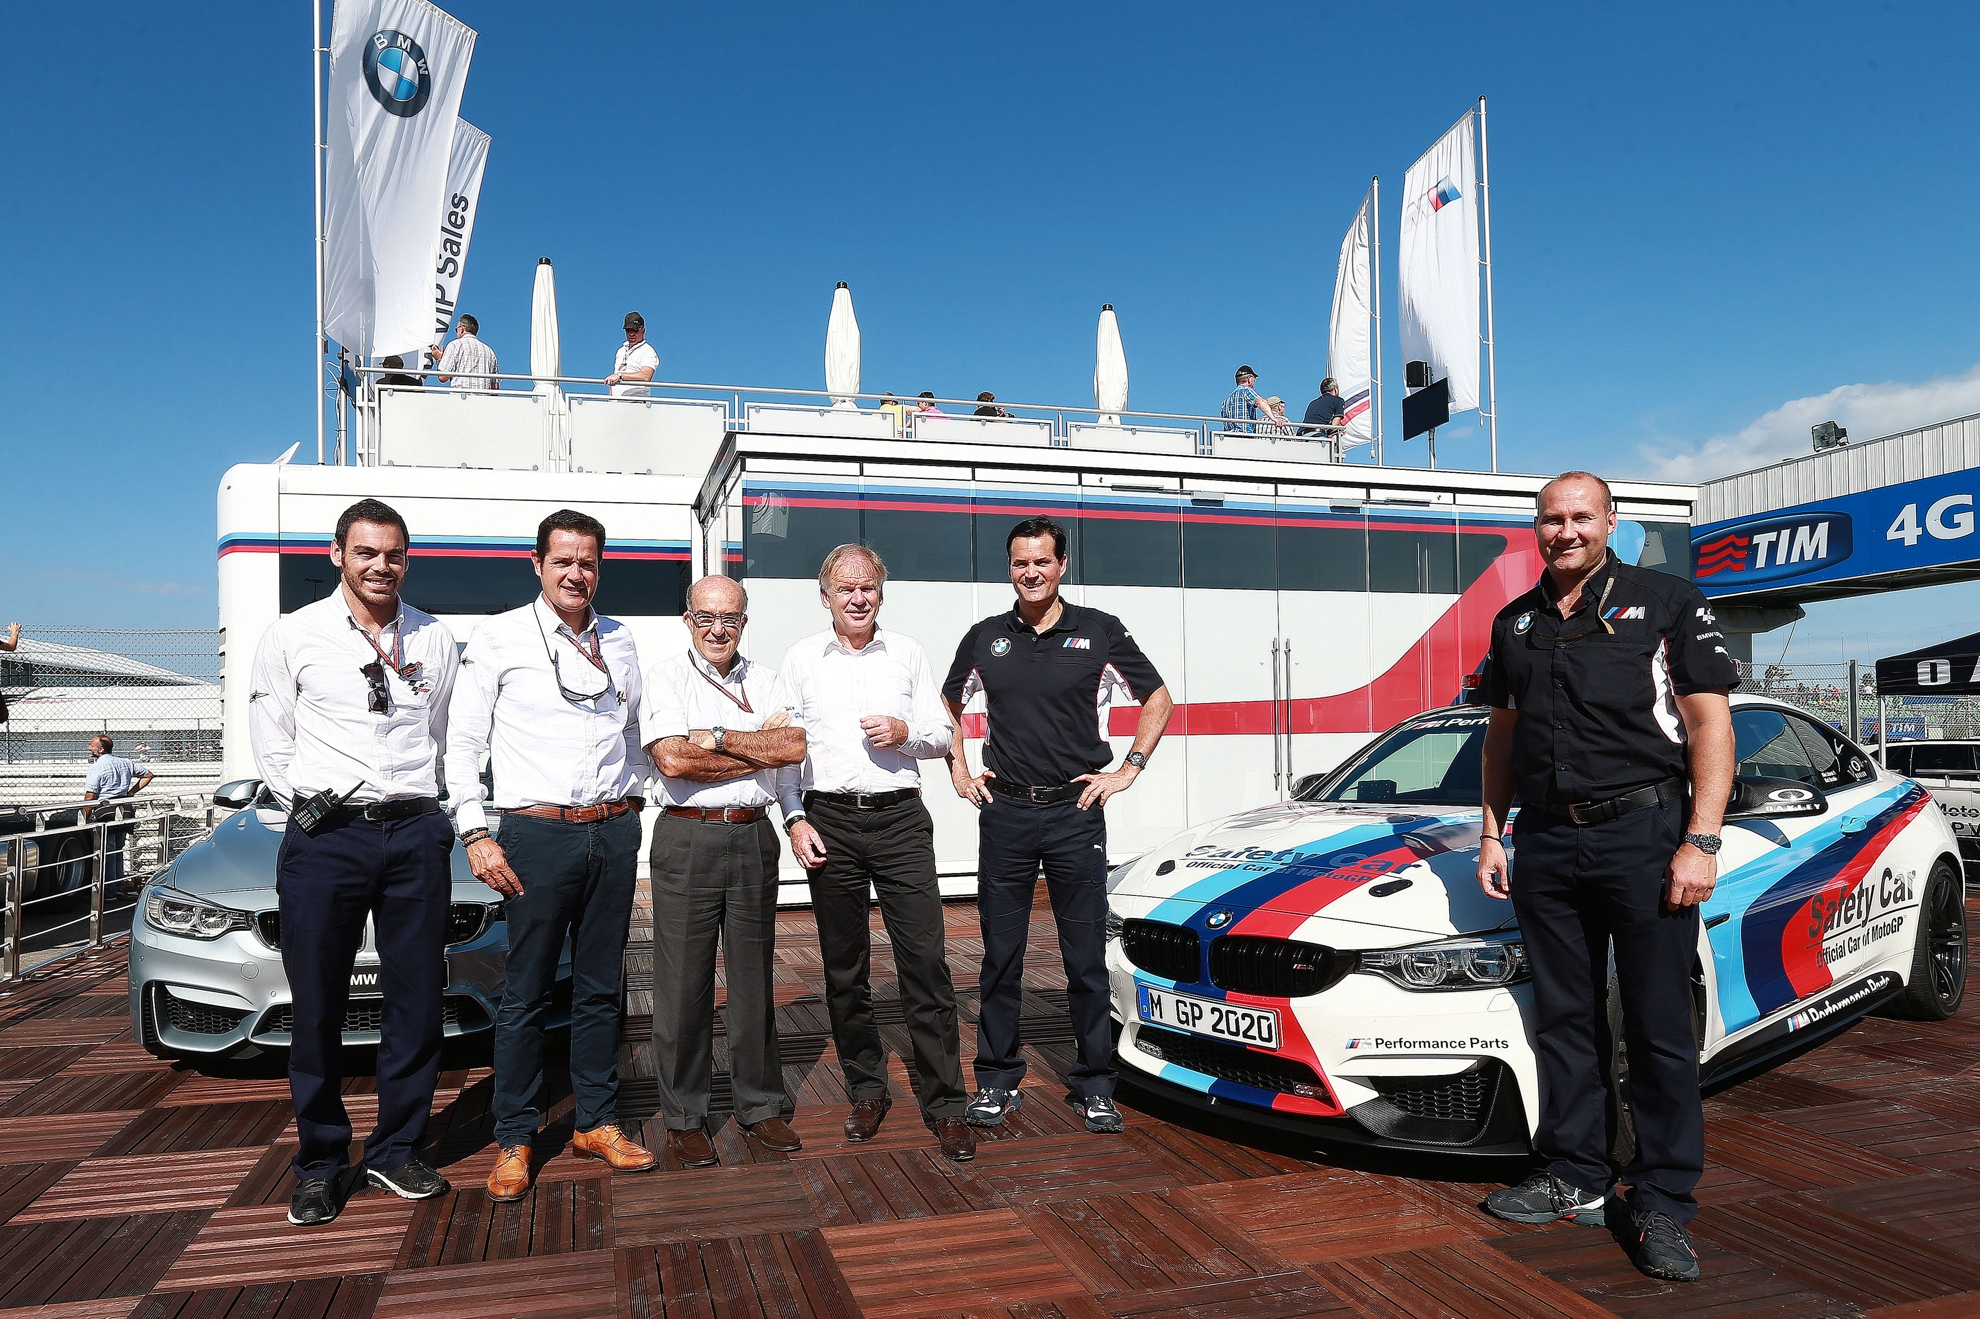 BMW-M-Official-Car-of-MotoGP